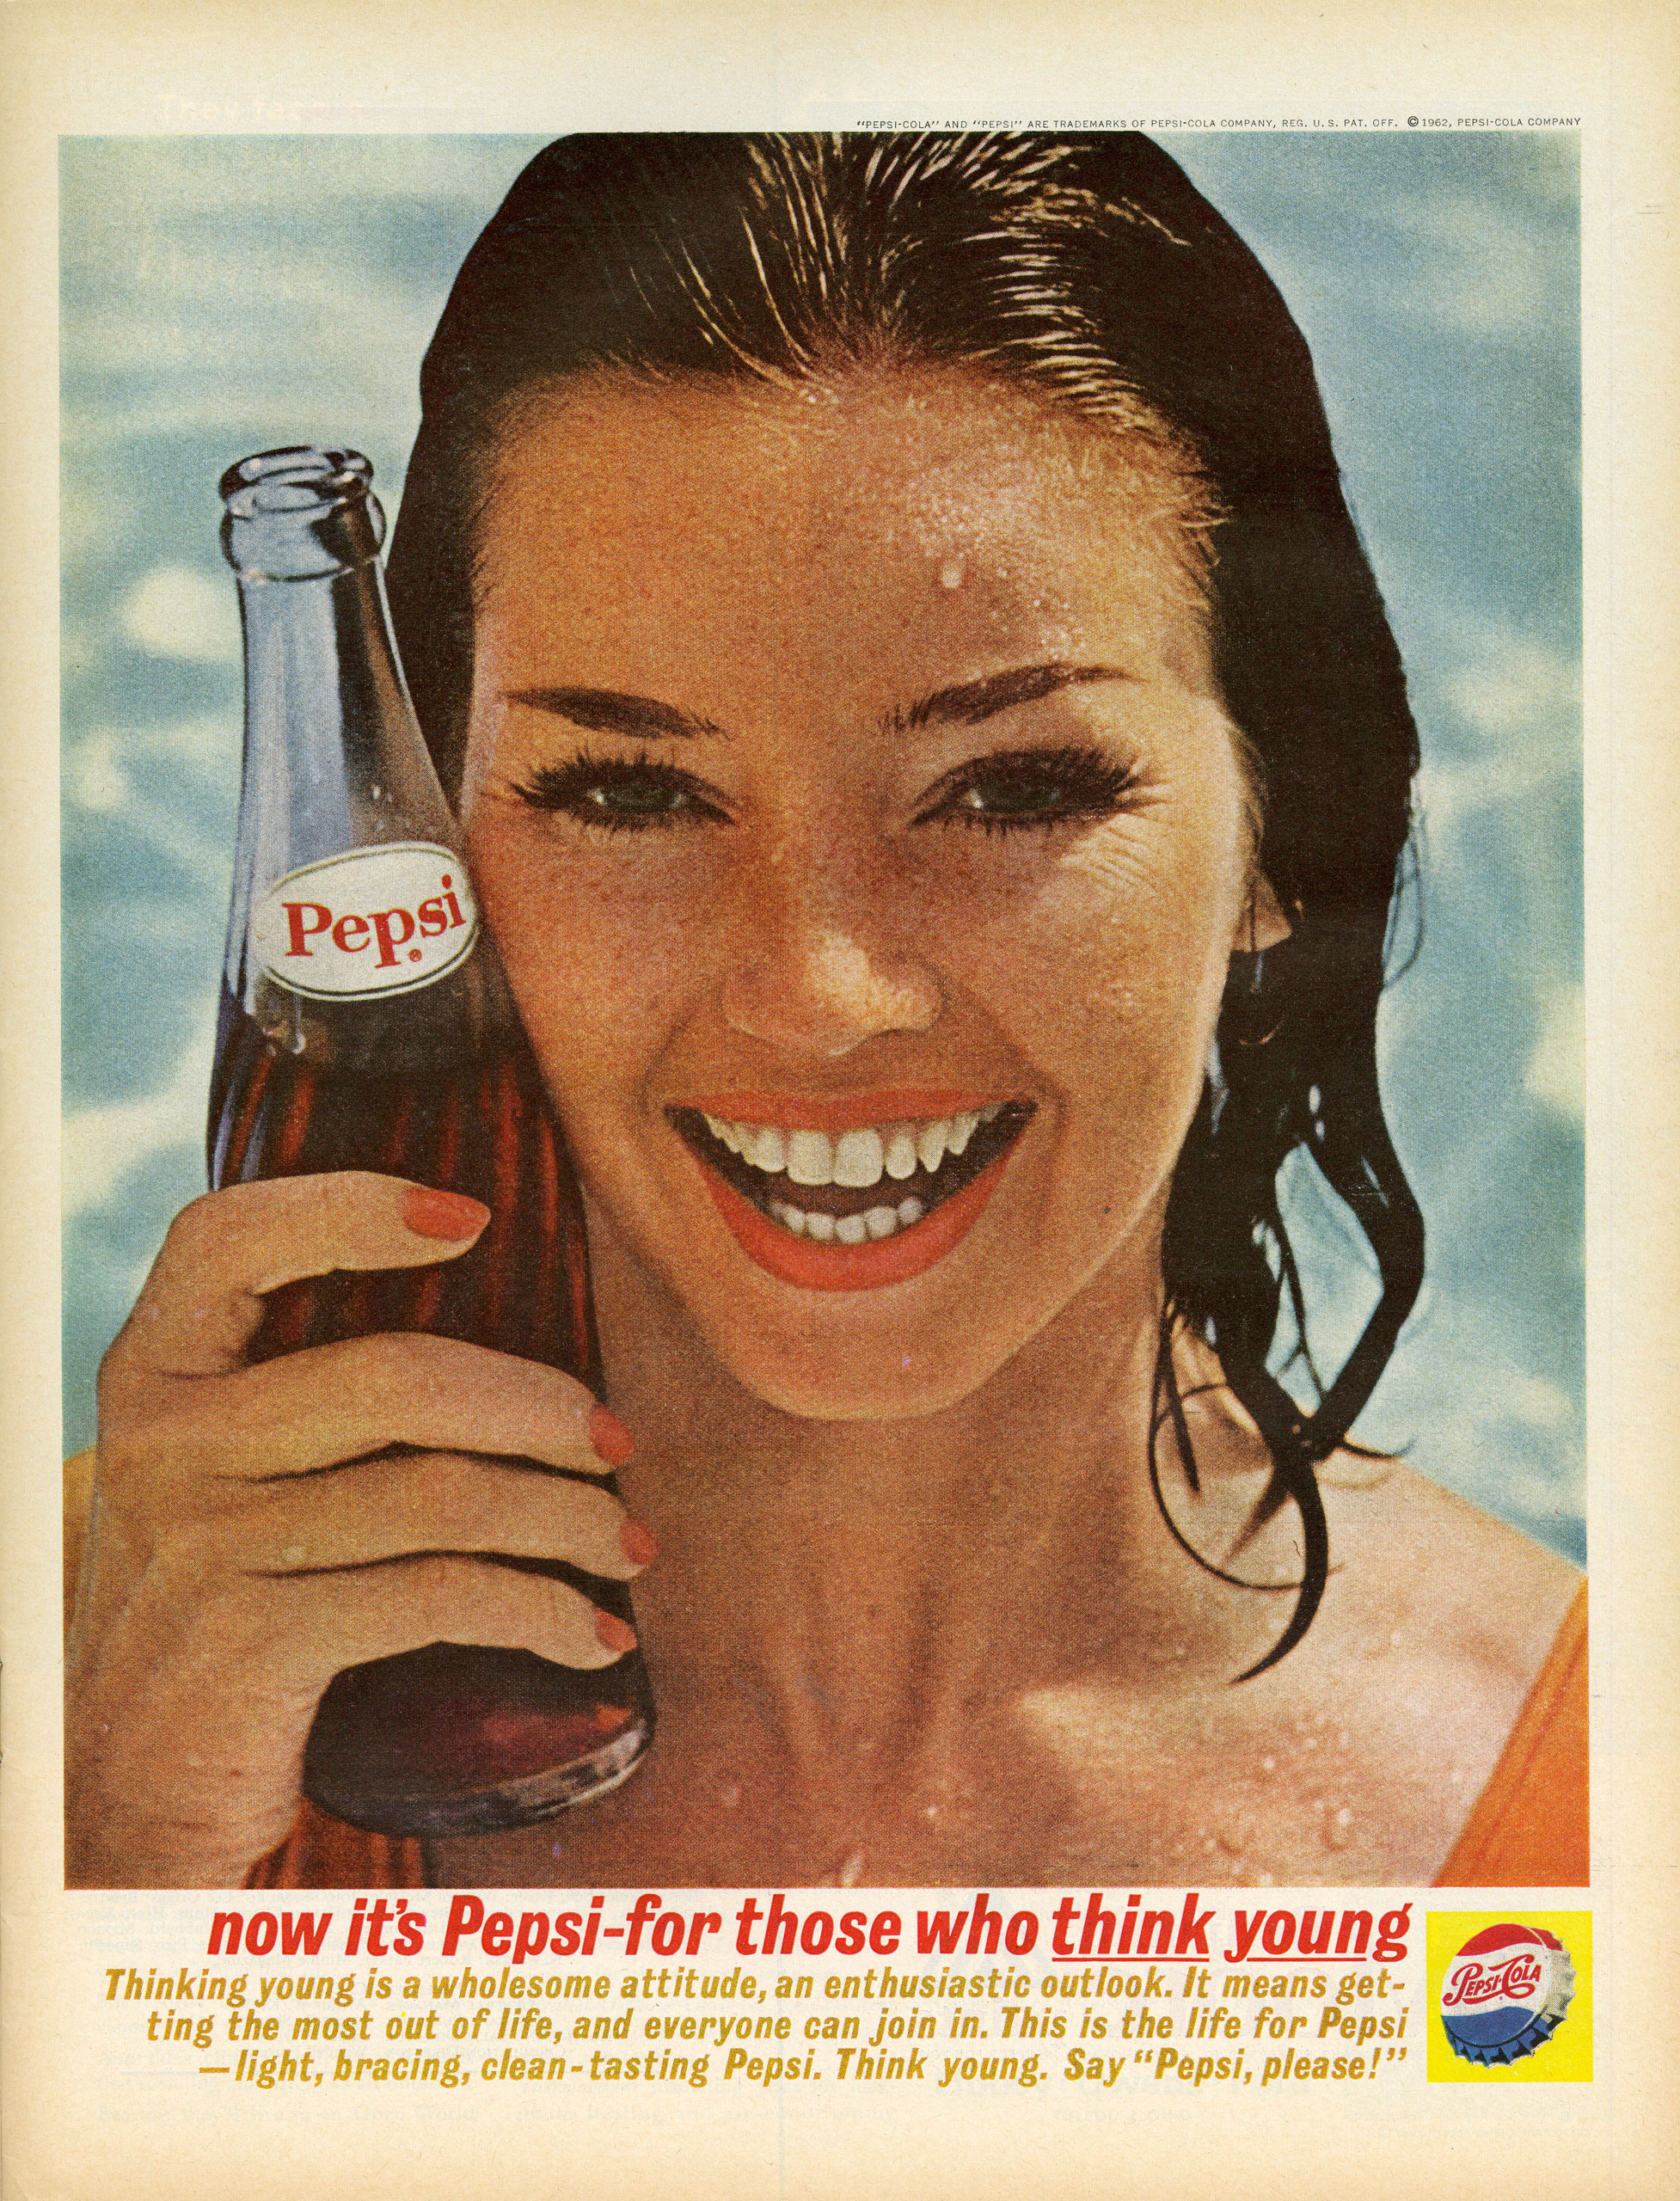 "<b>Pepsi, August 31, 1962</b> In Season 3, Sterling Cooper produces a commercial for Patio Cola—rebranded in 1963 as Diet Pepsi—in which an Ann-Margret look-alike sings ""bye bye sugar"" to the tune of ""Bye Bye Birdie."" This real print ad for Pepsi, from the same year that the episode takes place, relies on the same youthful glow Sterling Cooper was hoping to achieve by alluding to newly crowned superstar Ann-Margret. Youth, the ad suggests, is less about one's age than one's attitude (assuming it's accompanied by a bottle of Pepsi)."